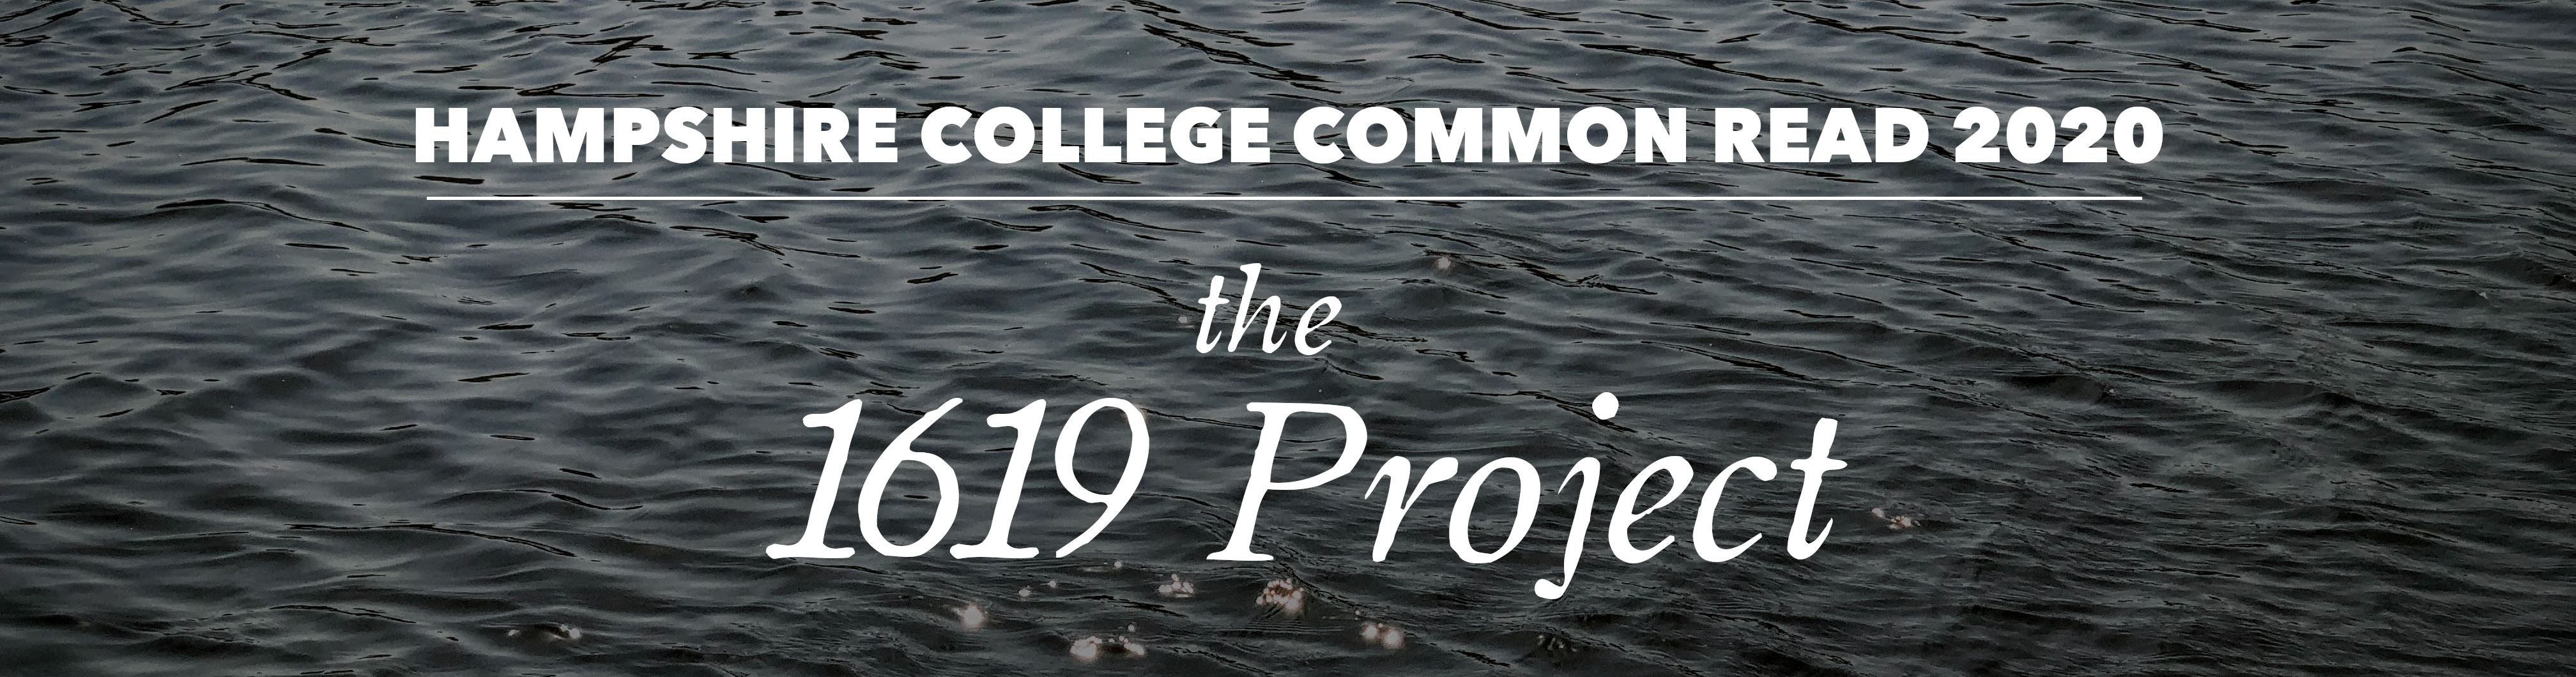 Hampshire College Common Read 2020: the 1619 Project